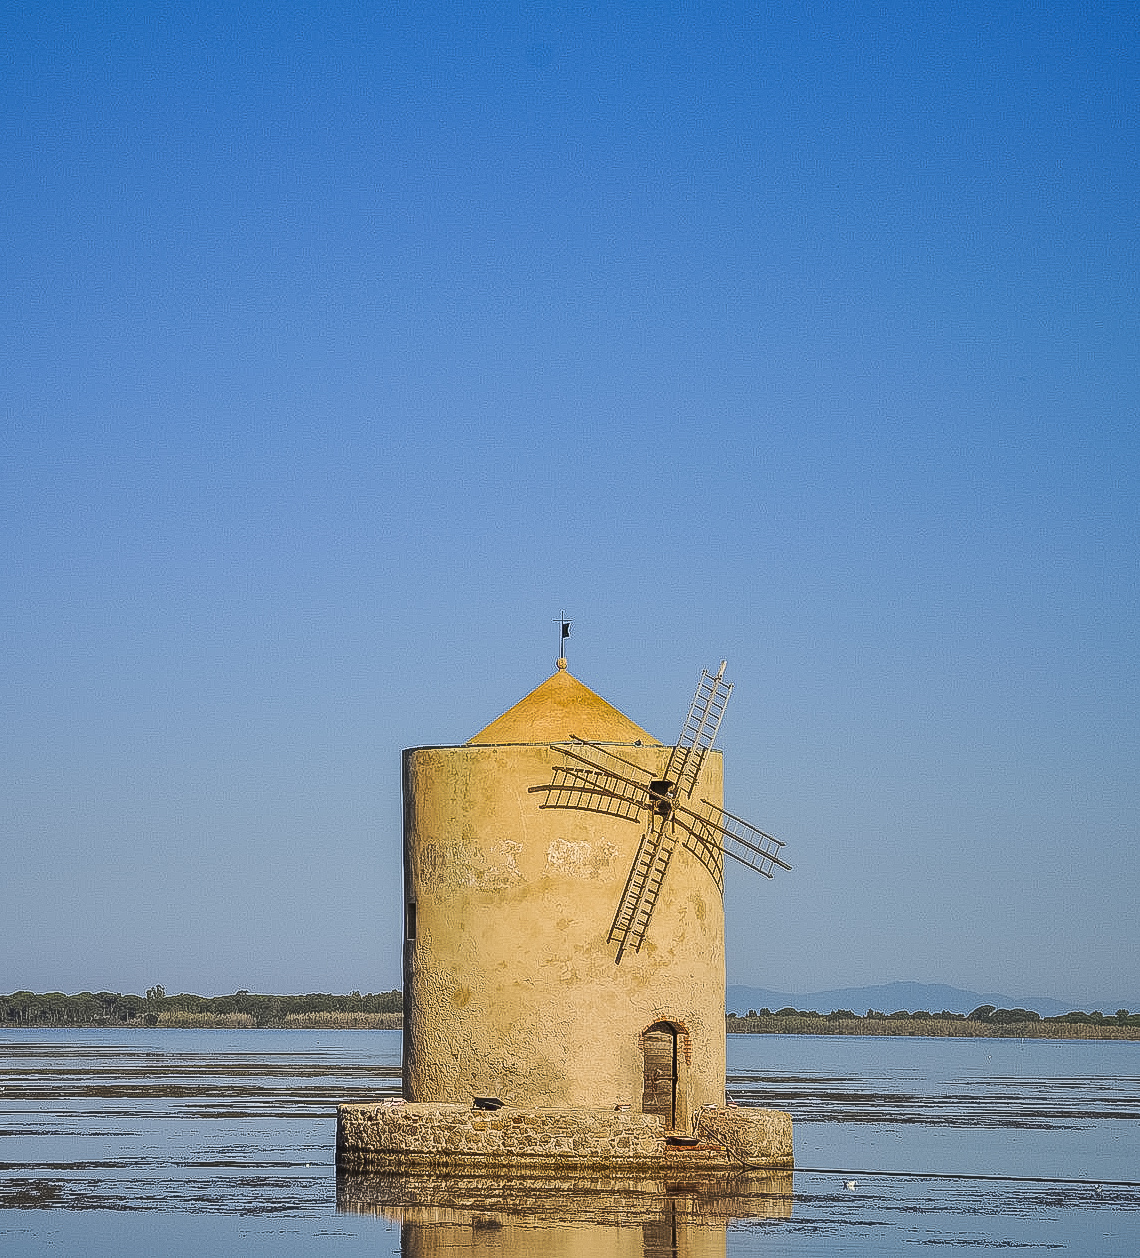 The windmill on the lagoon of Orbetello in Tuscany